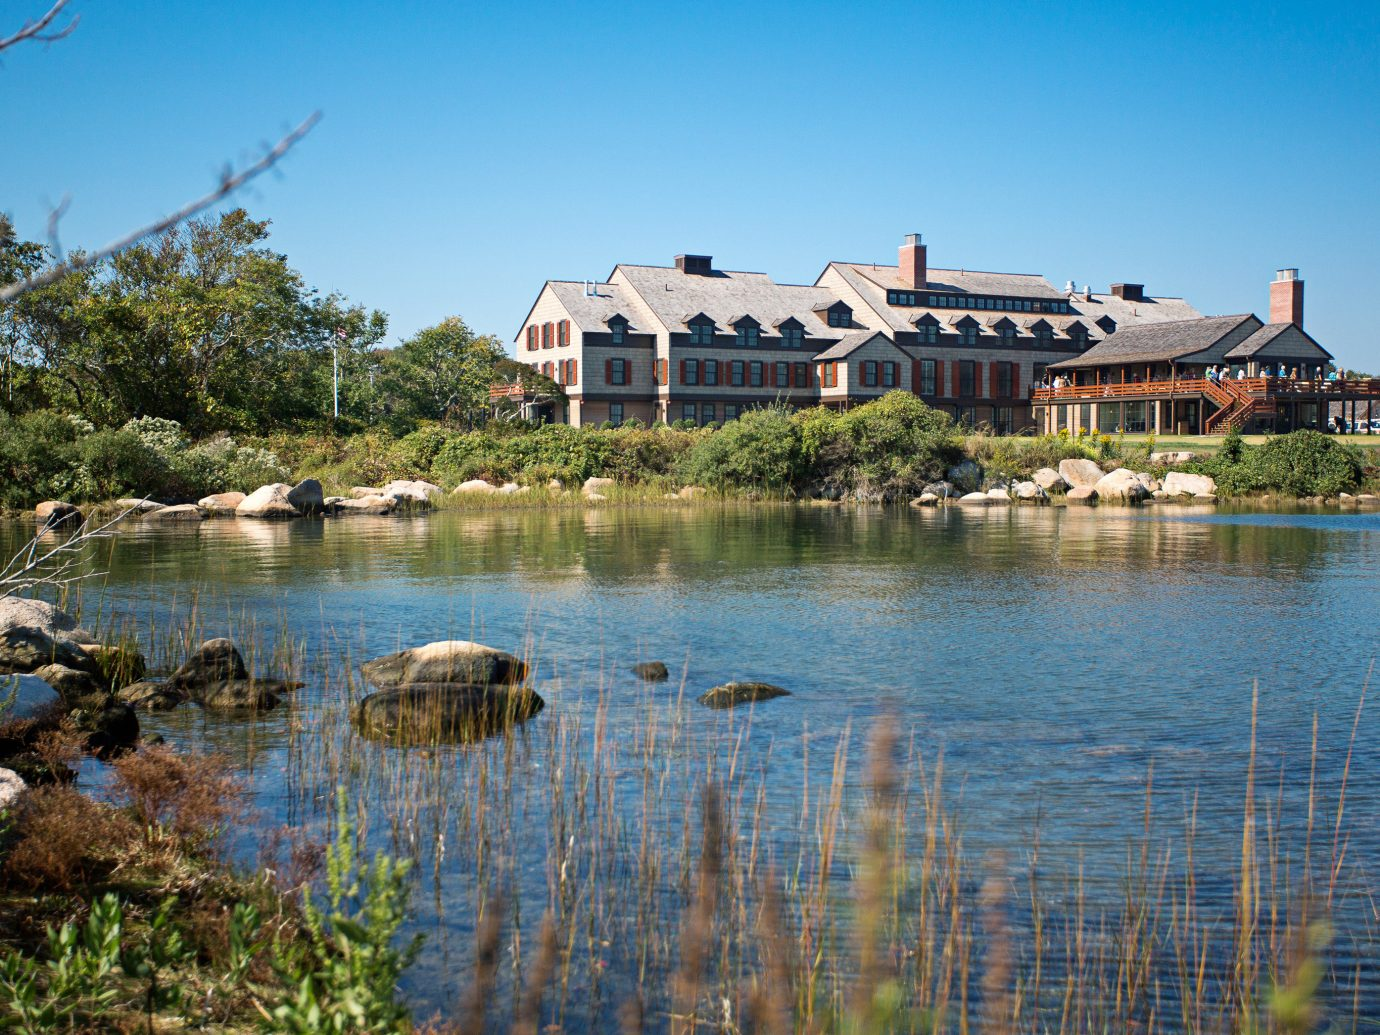 Classic Exterior Grounds Inn Nature Outdoors water outdoor sky reflection body of water Lake River house pond estate reservoir Sea shore surrounded